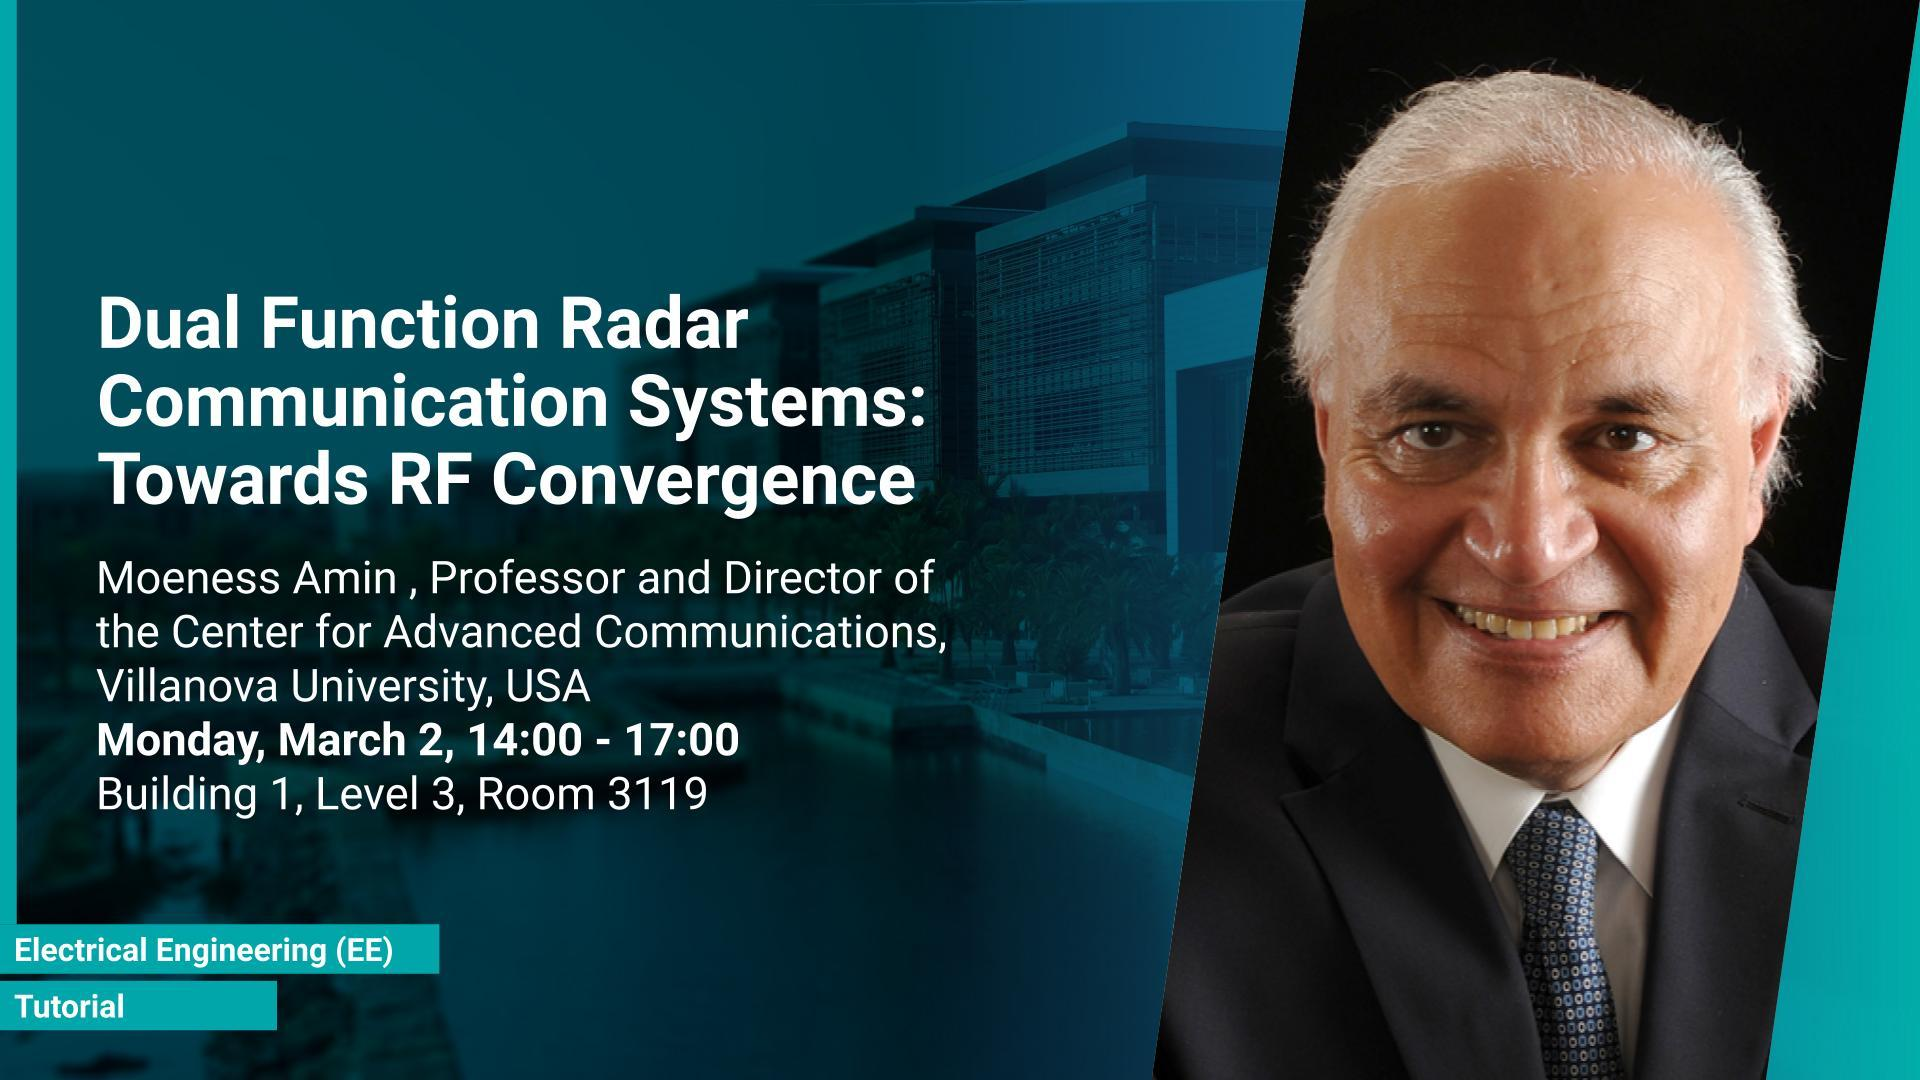 KAUST-CEMSE-EE-Tutorial-Moeness-Amin-Dual-Function-Radar-COmmunication-Systems-Towrds-RF-Convergence.jpg